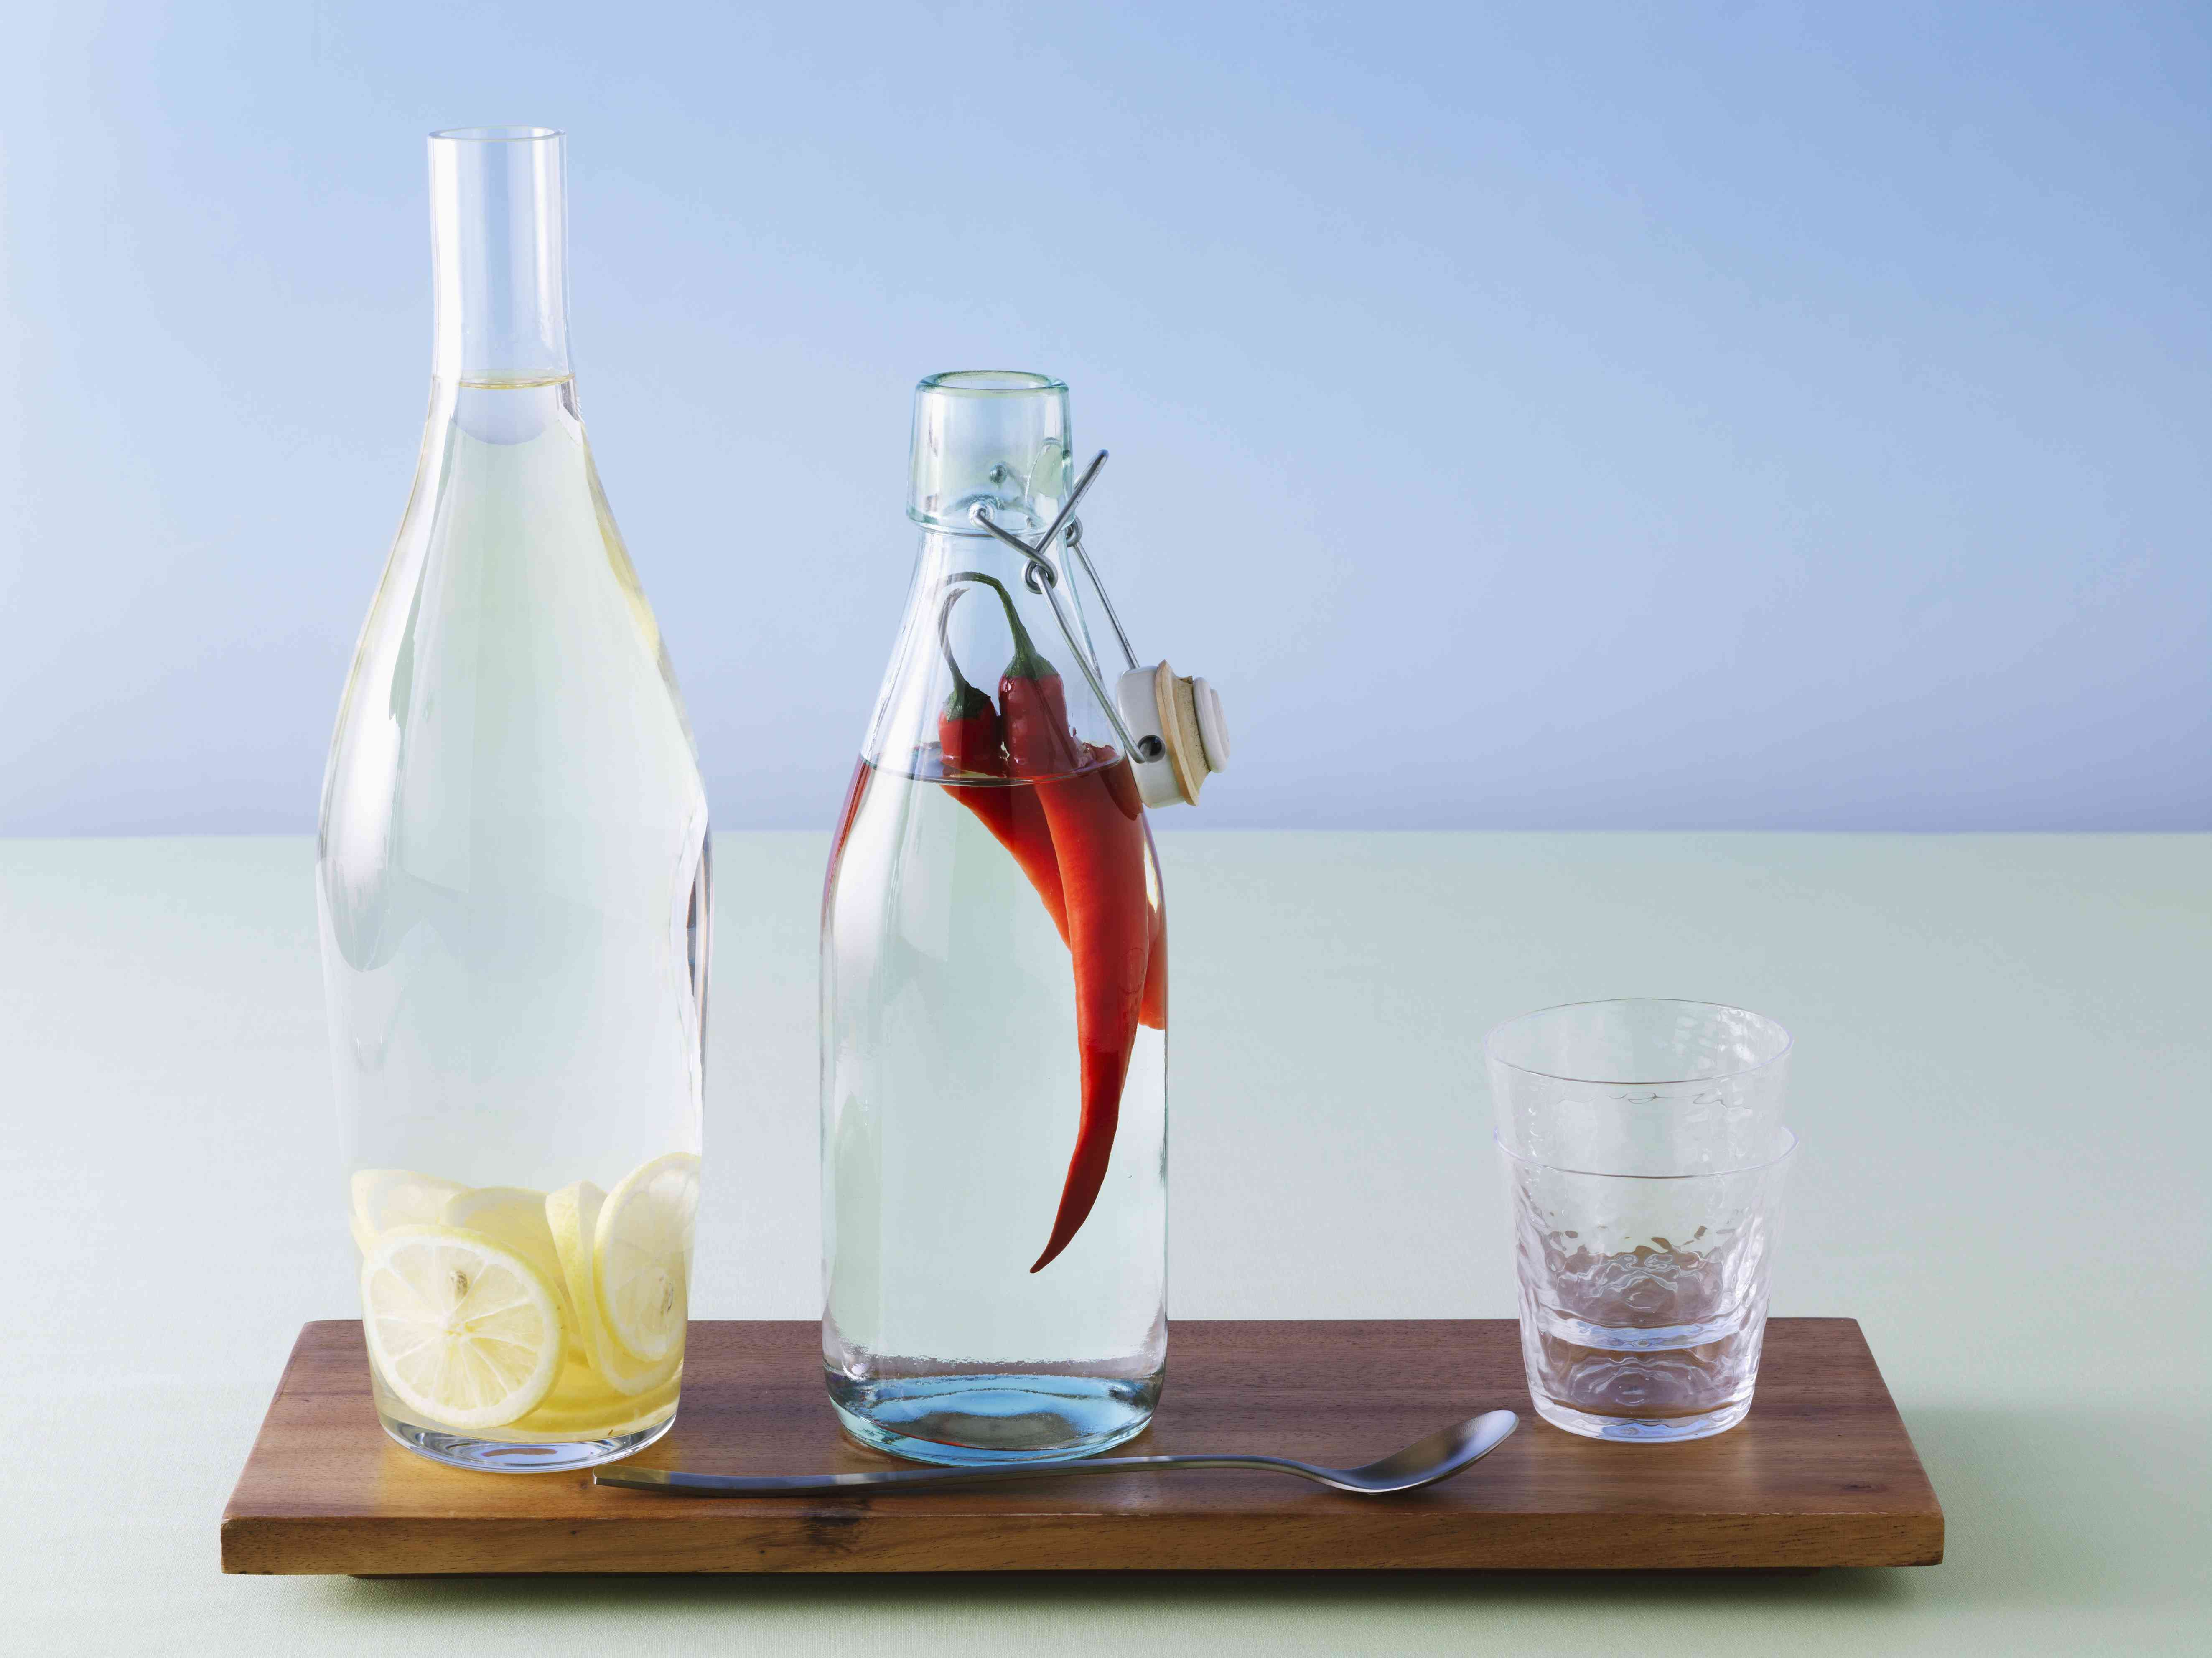 Bottled vodka infusions on a wooden board with a spoon and cup